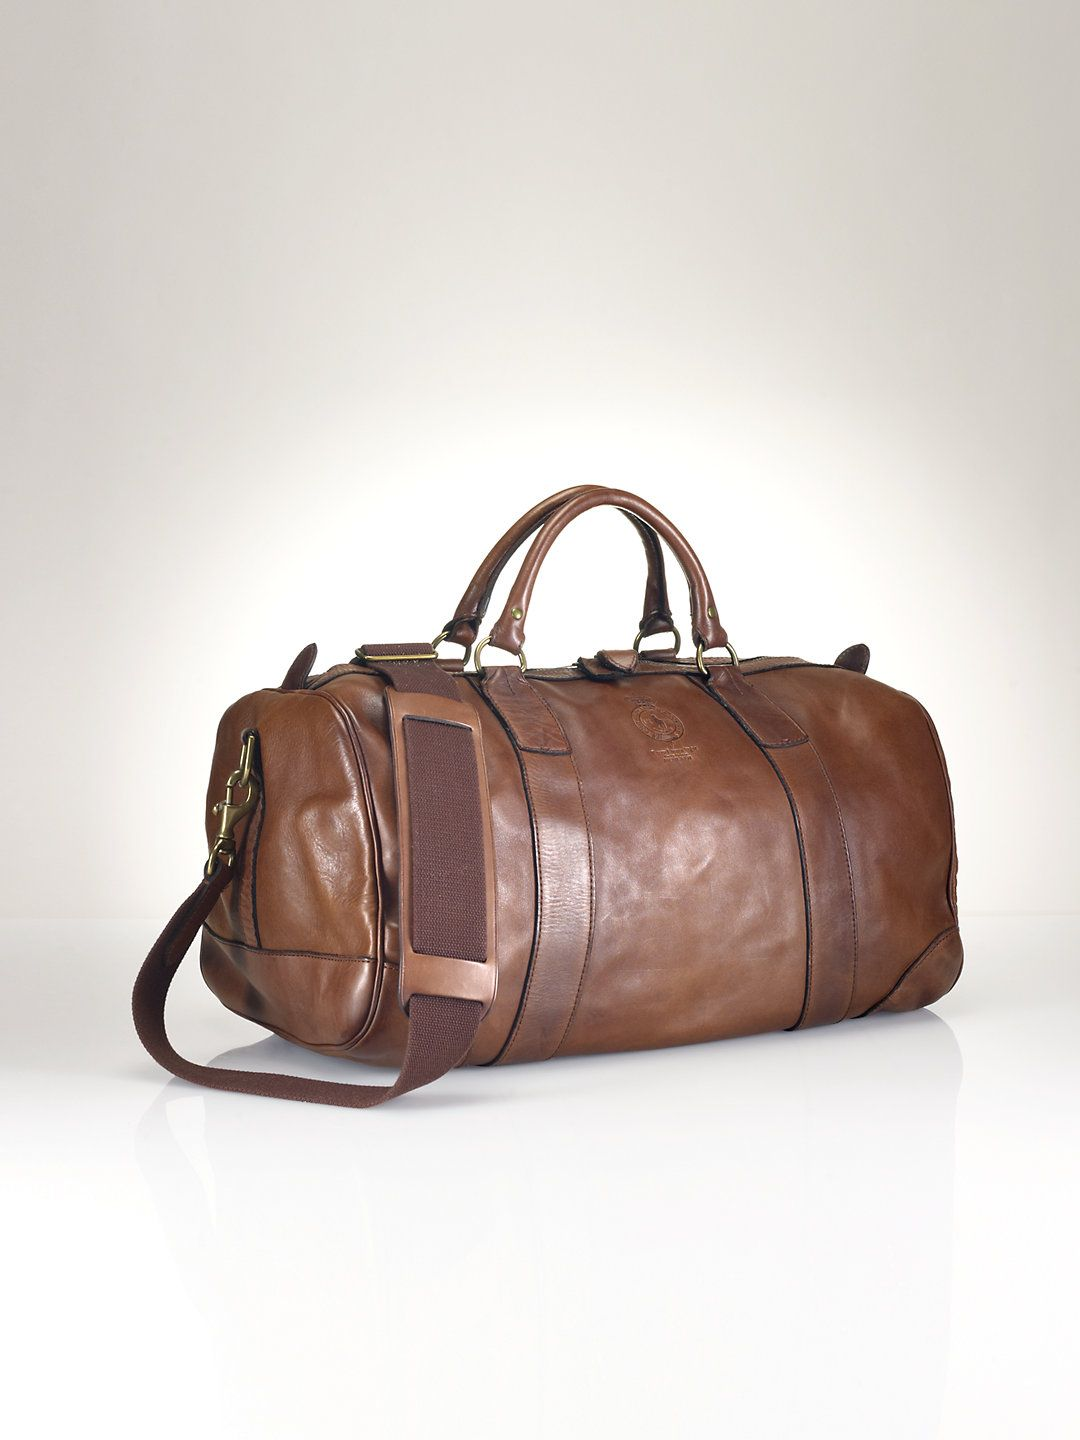 883b66949fc7 Leather Duffel Bag - Bags   Business Accessories Men - RalphLauren ...